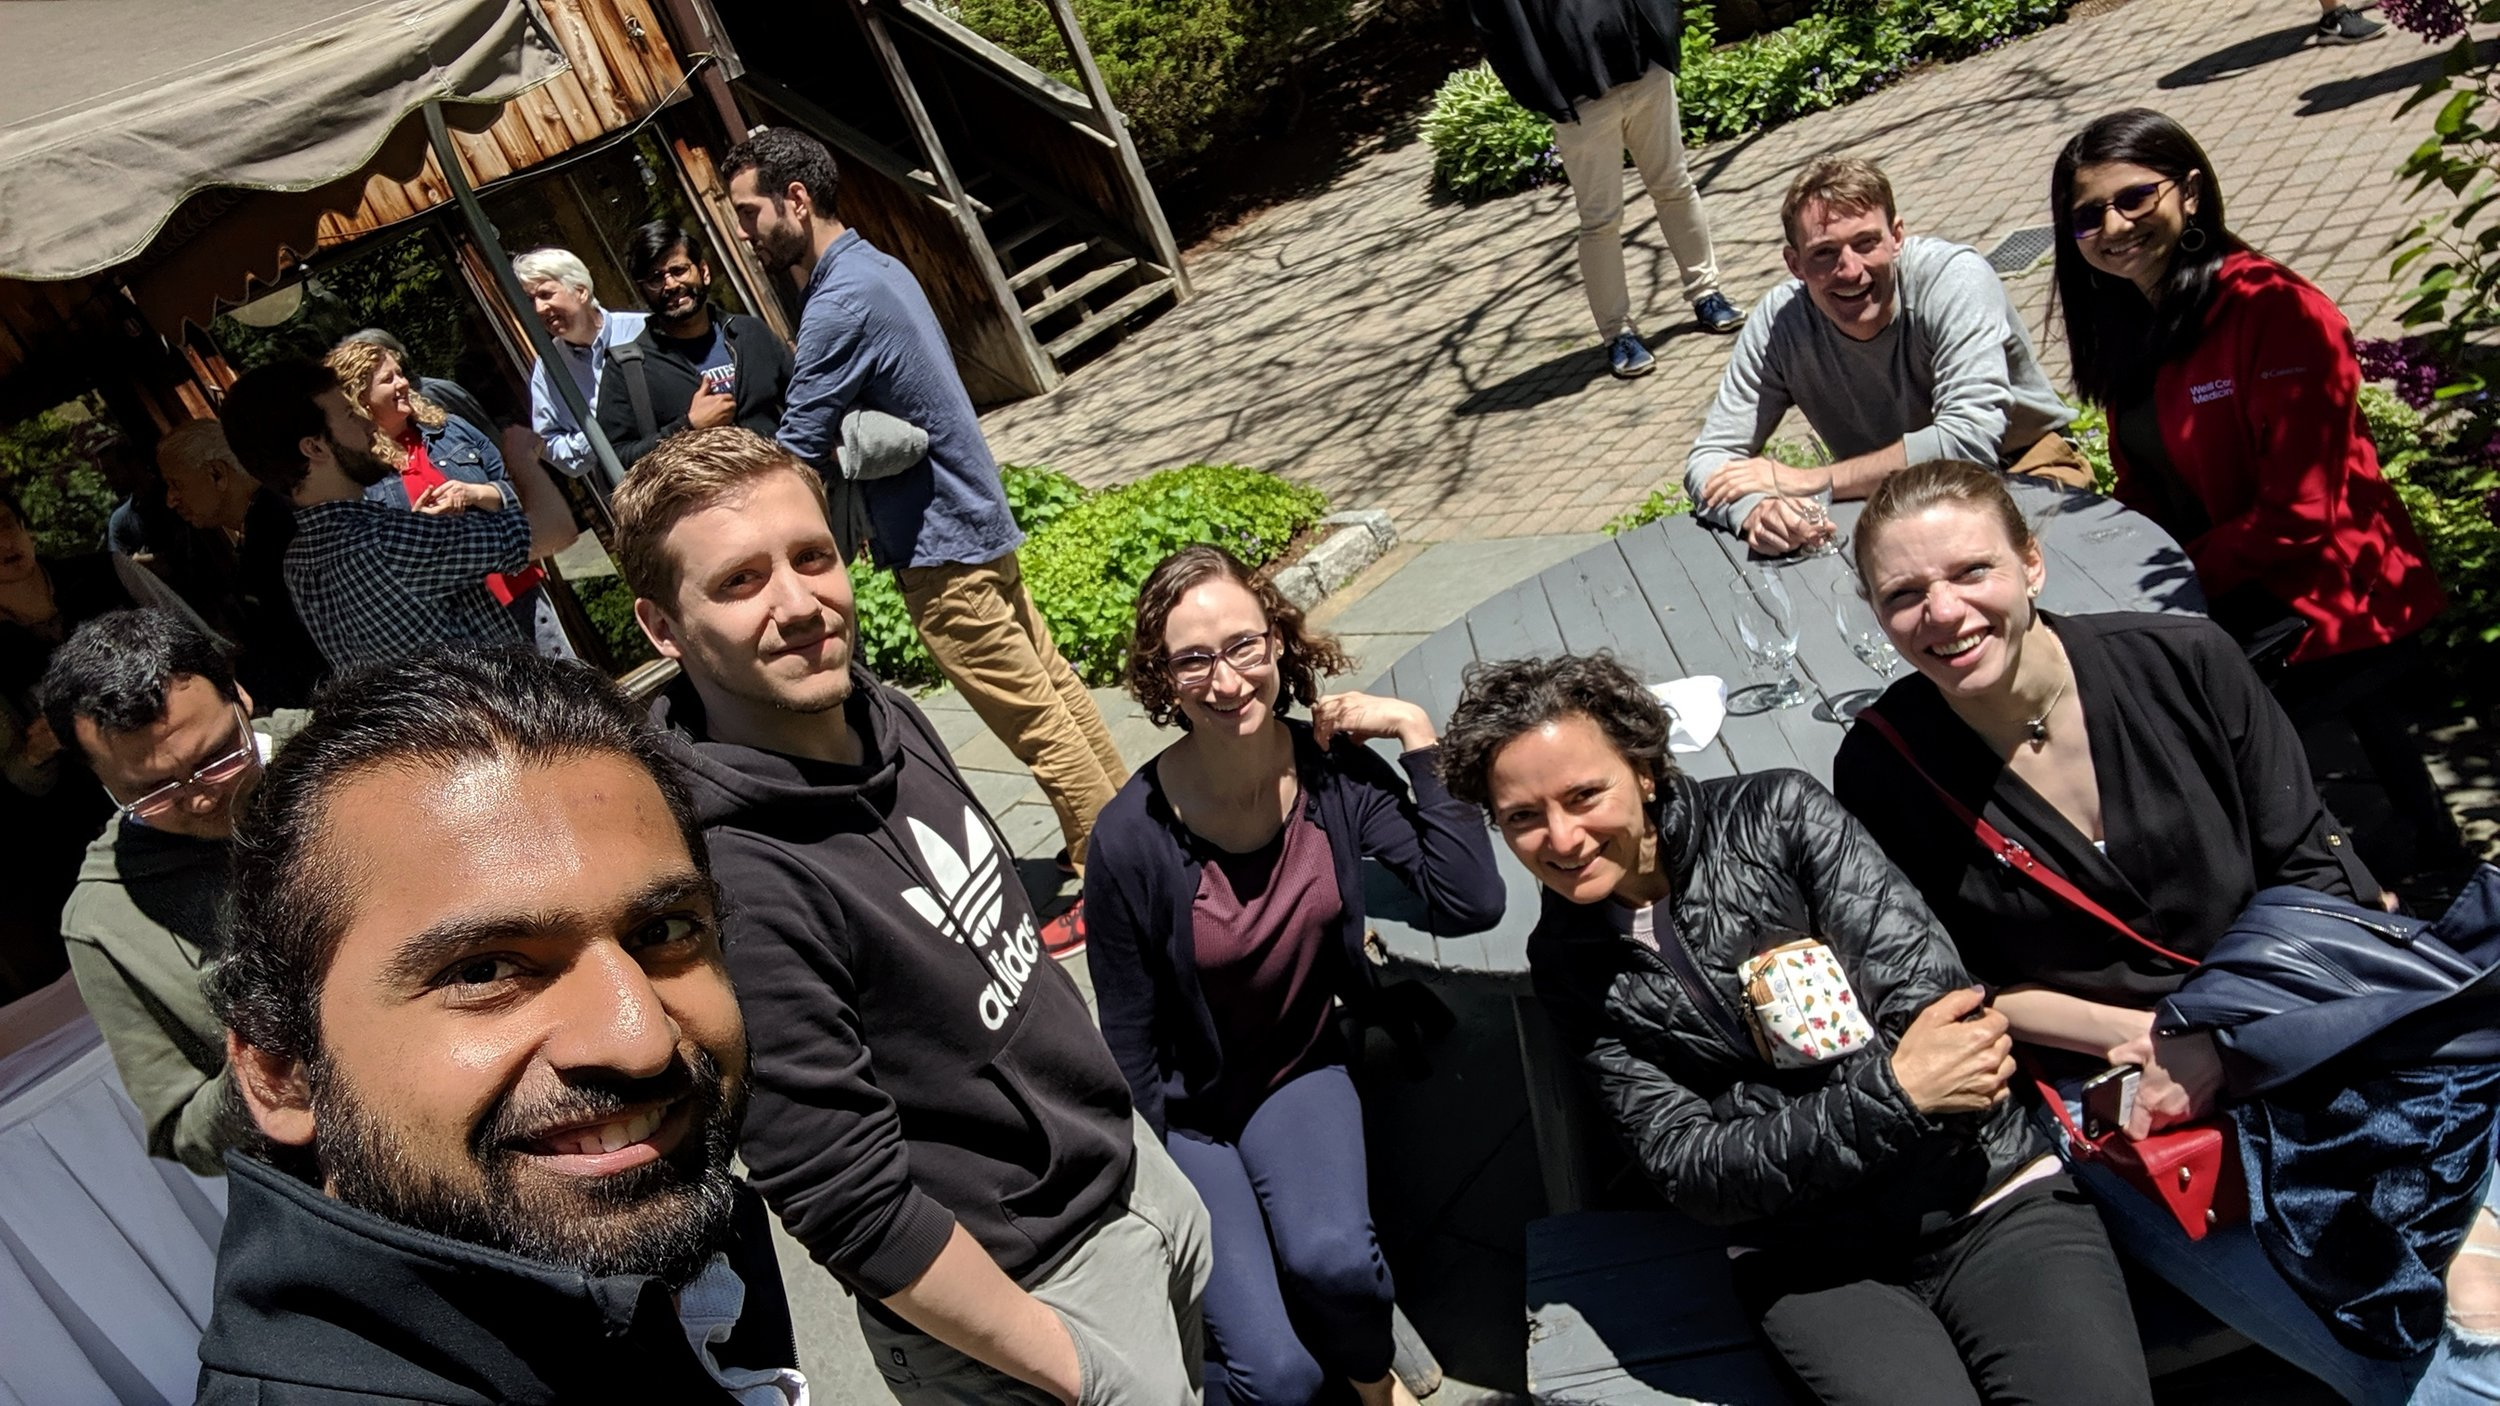 The RHEHRTUNEROCKRUBETTINGER Retreat @Interlaken Inn  A day long talks-packed meeting with the labs of Eric Rubin, Sarah Fortune, Chris Sassetti, Jeremy Rock, Kyu Rhee and Chris Sassetti at picturesque Interlaken Inn.